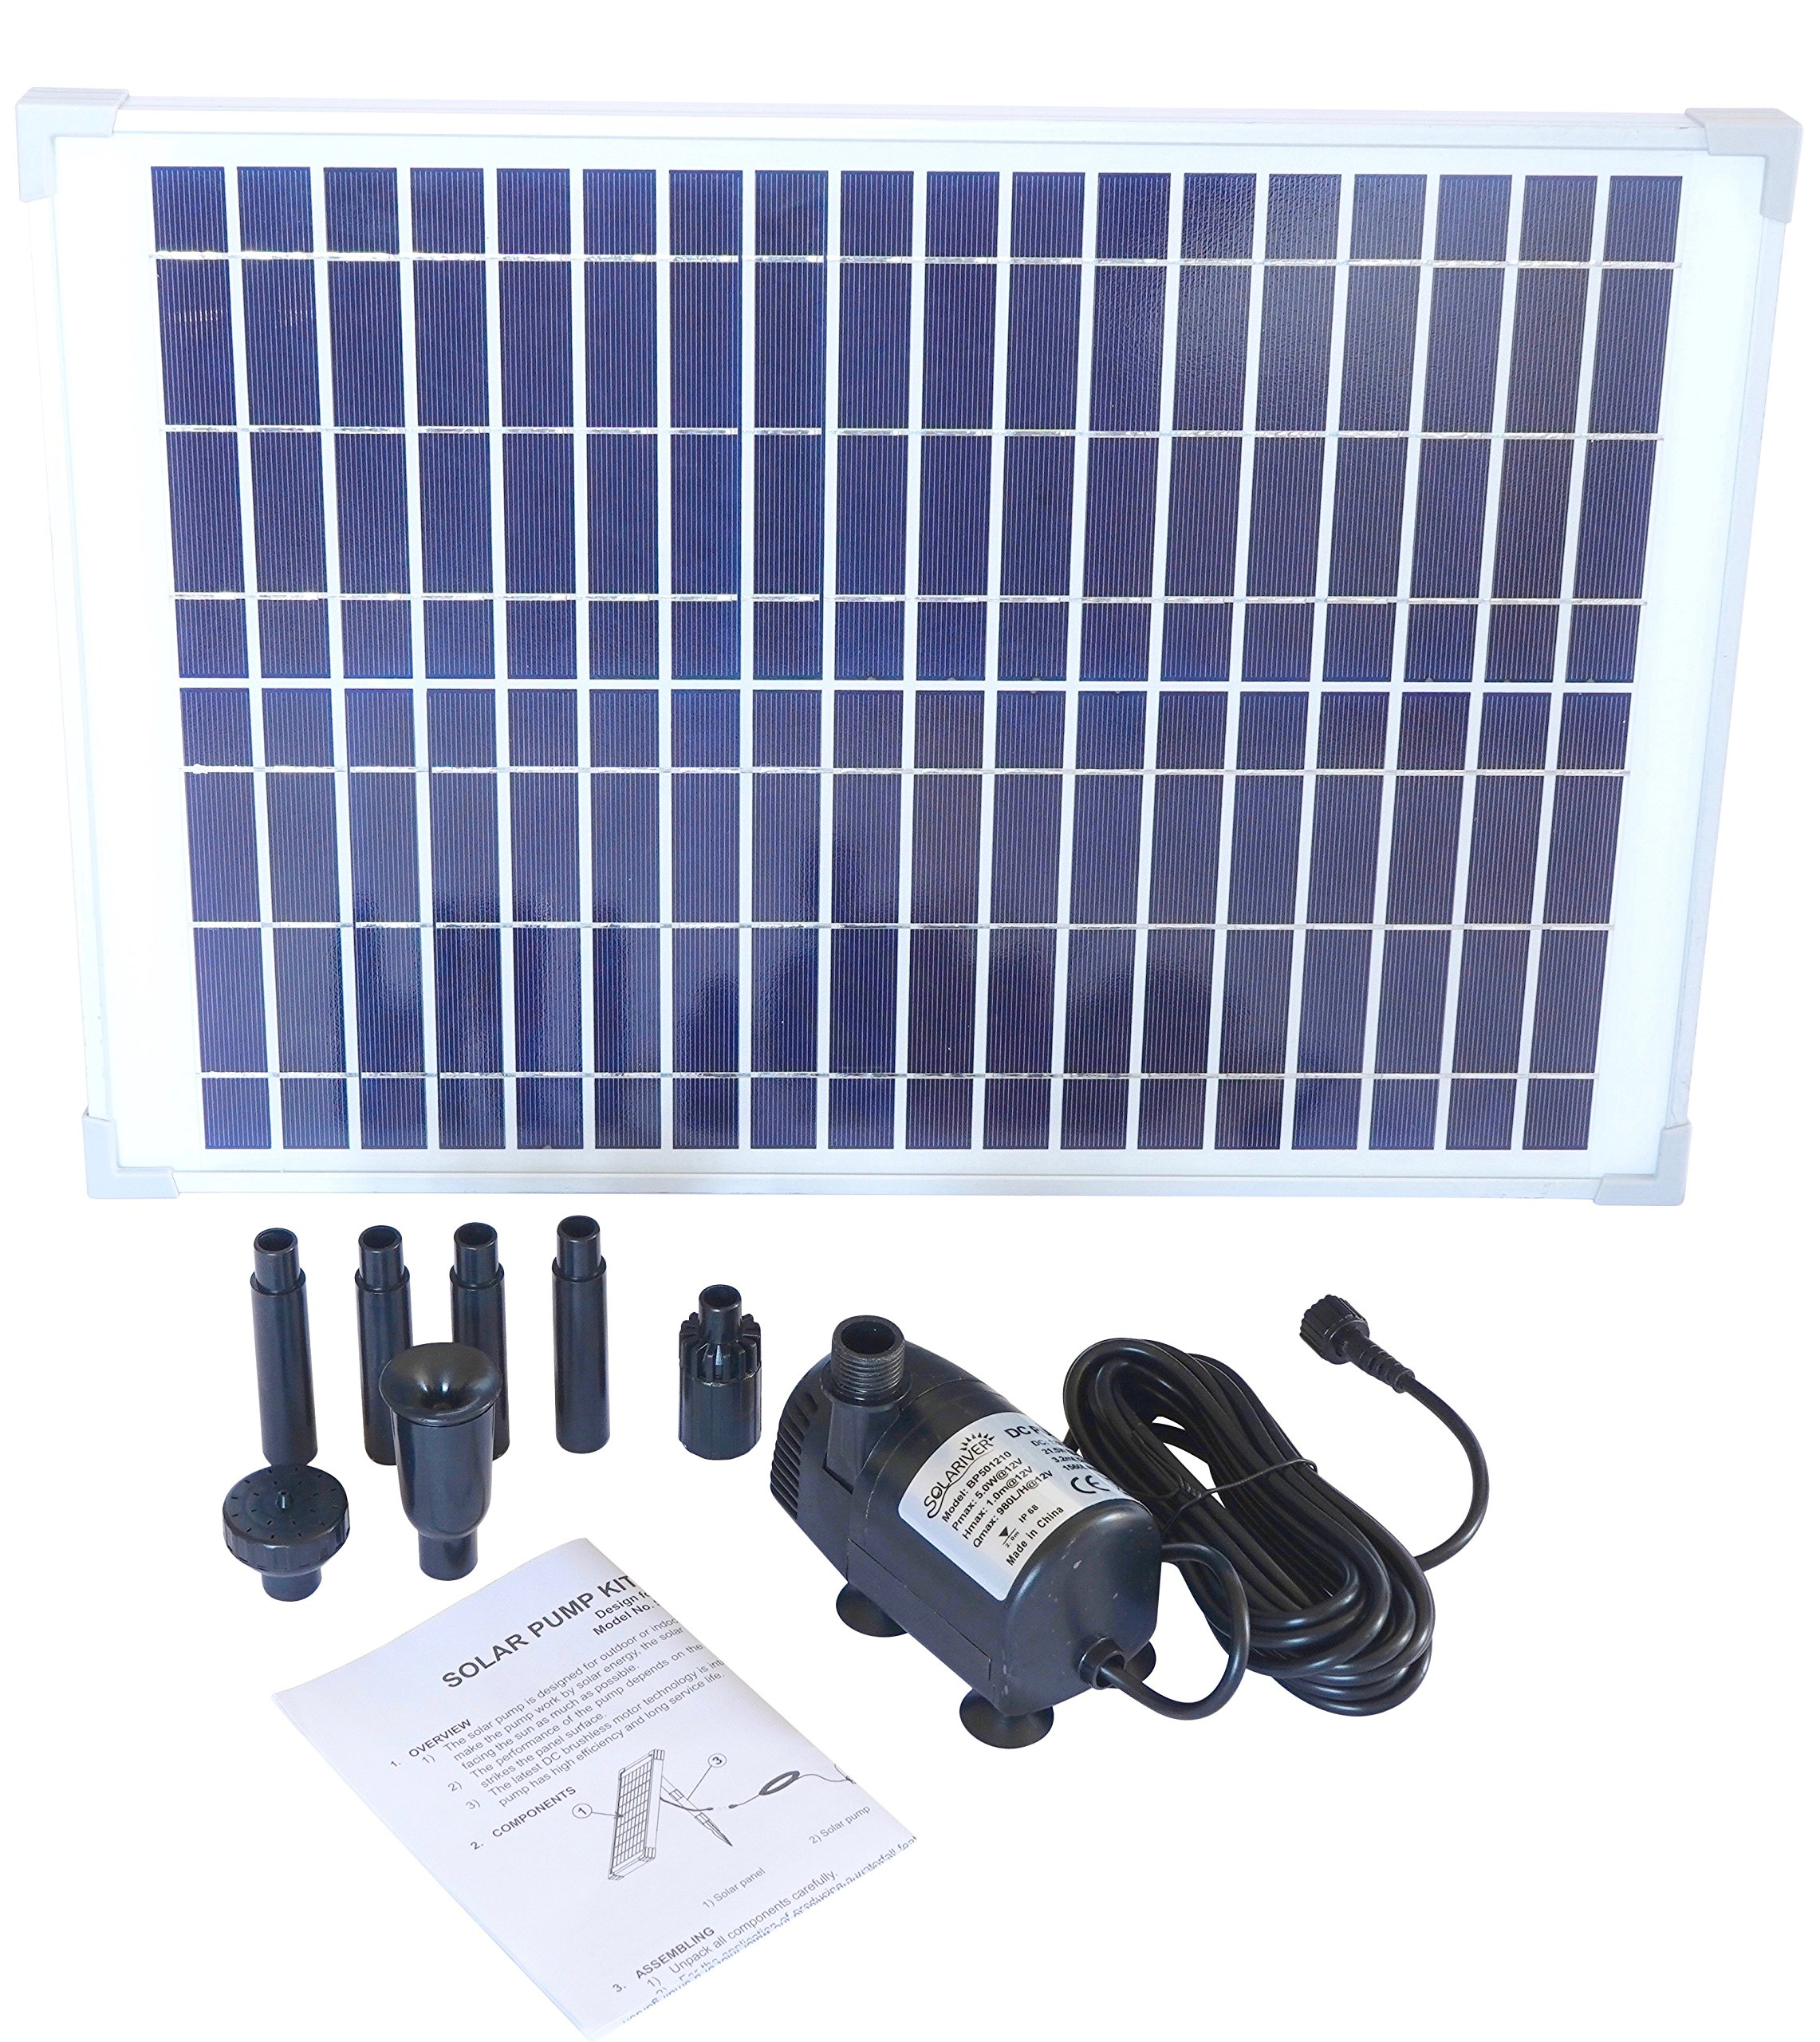 Solariver Solar Water Pump Kit - 360+GPH - Submersible Pump and 20 Watt Solar Panel for Sun Powered Fountain, Waterfall, Pond Aeration, Aquarium, Aquaculture (NO Battery Backup) by Solariver